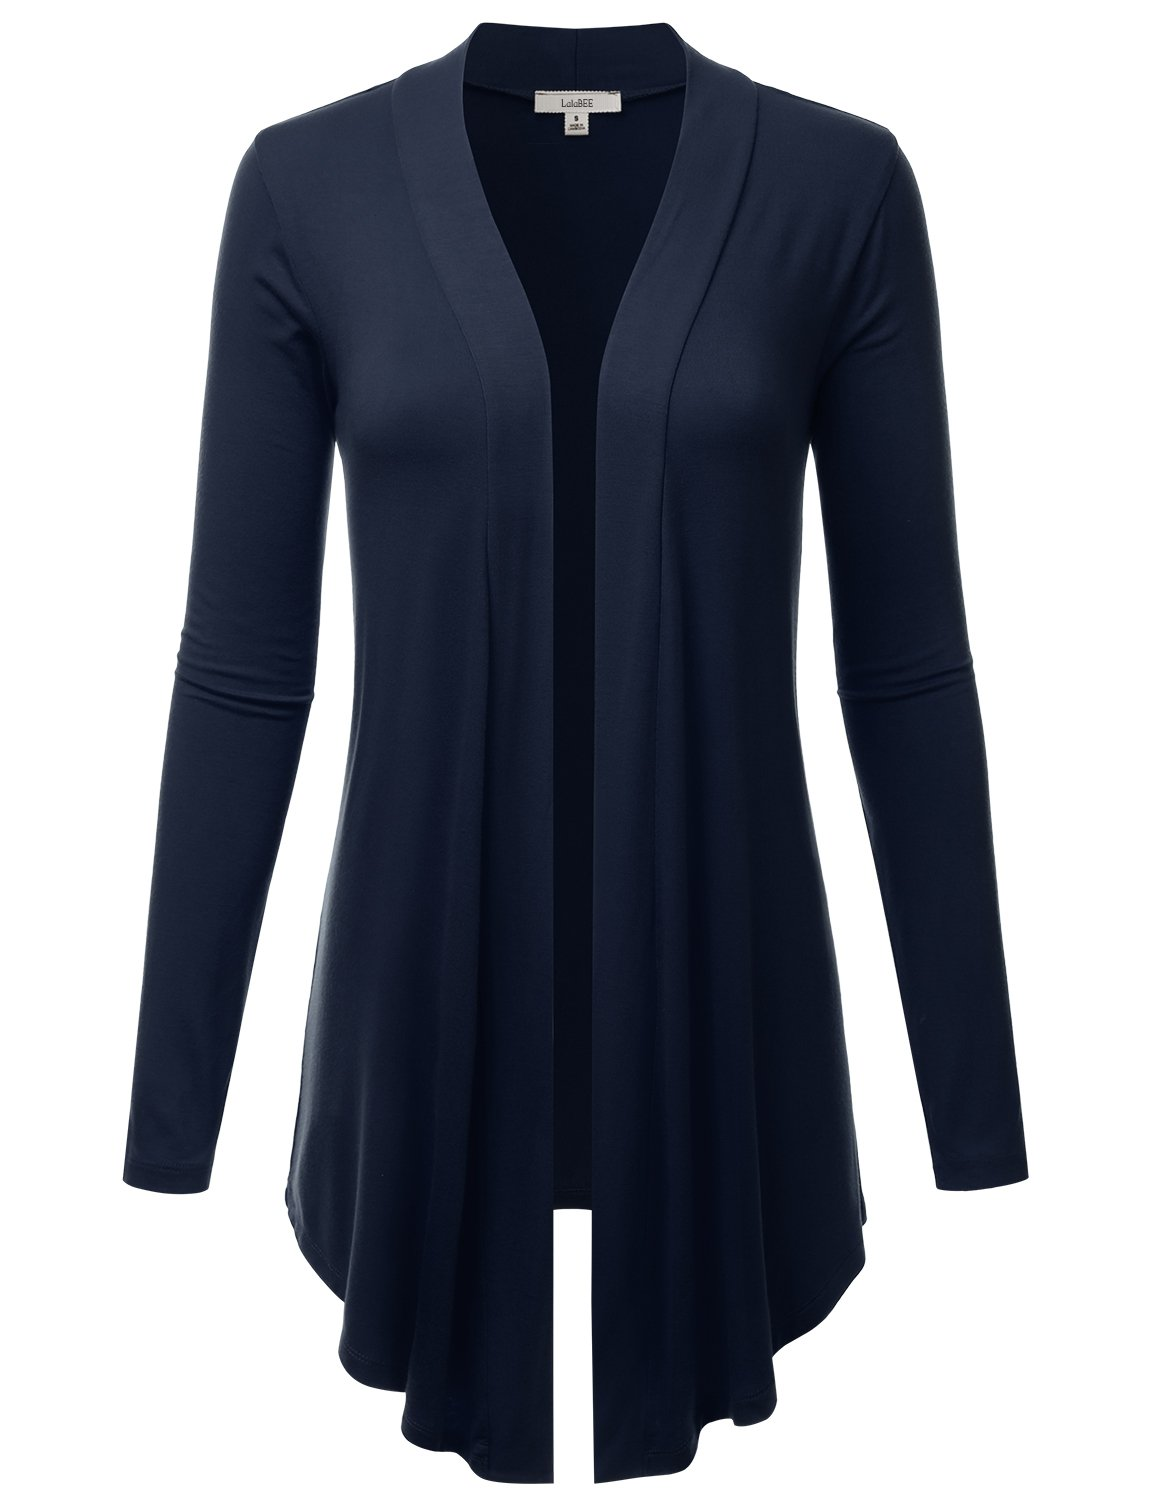 LALABEE Women's Draped Open-Front Long Sleeve Light Weight Cardigan-MIDNIGHTNAVY-M